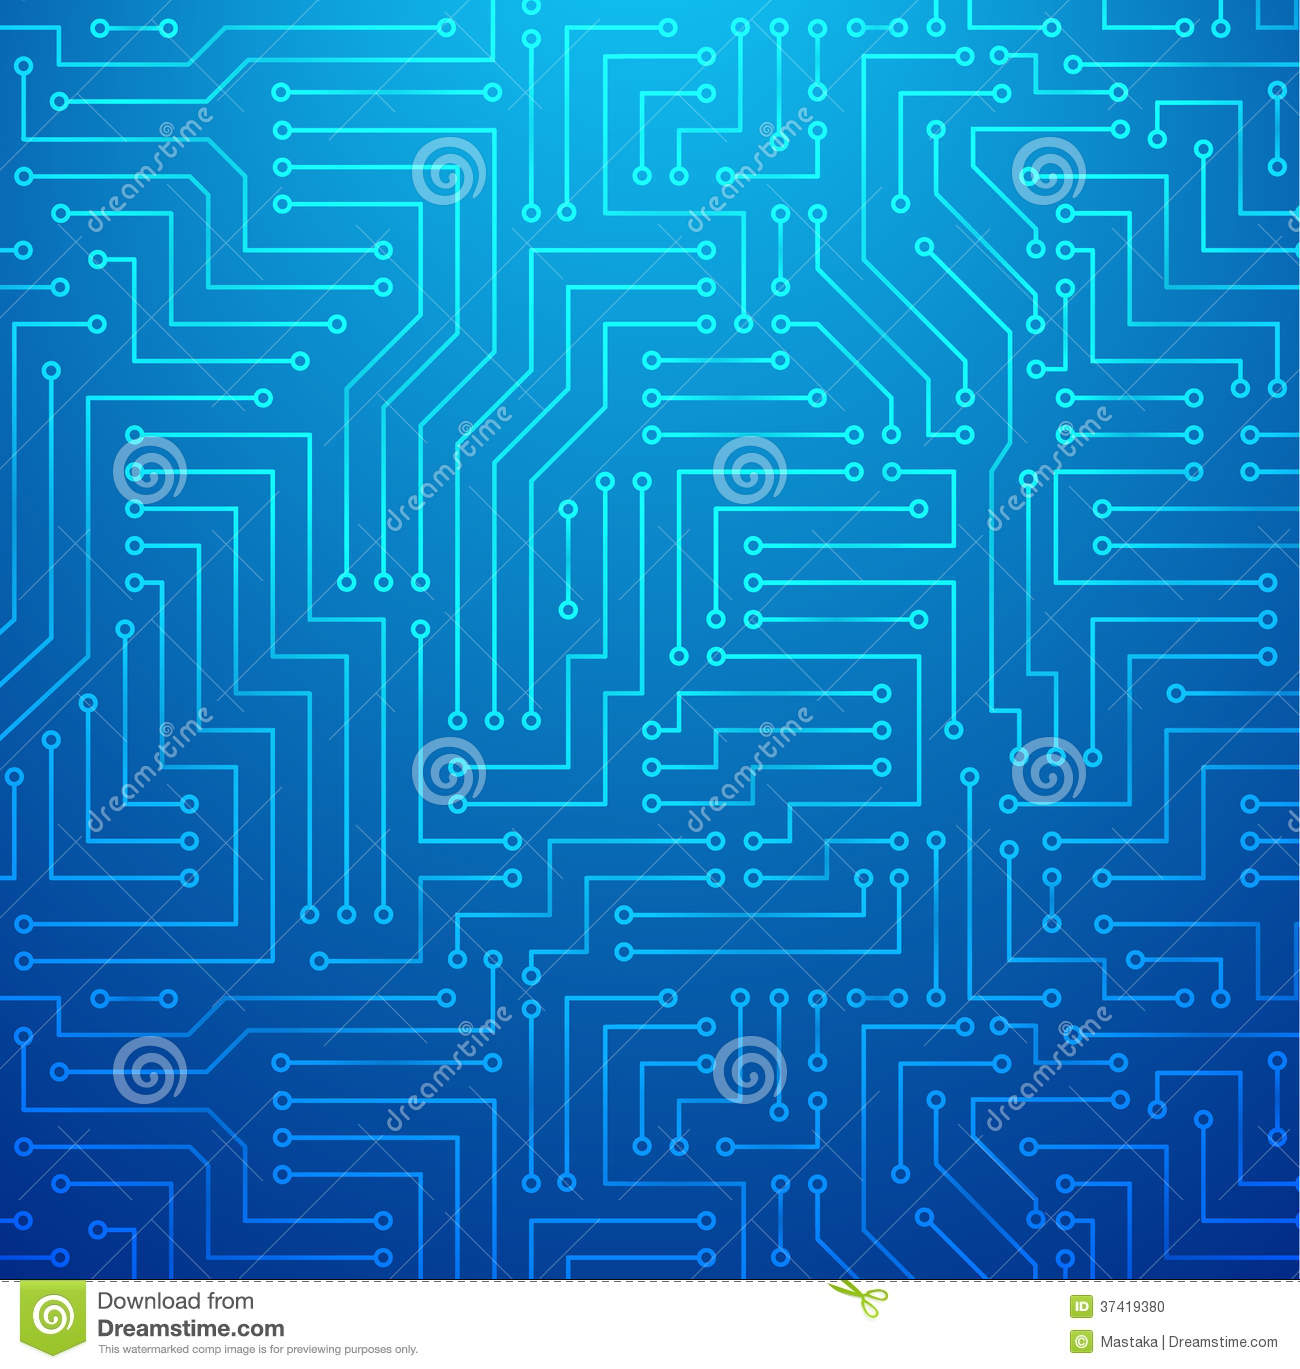 Similiar Blue Circuit Board Graphic Keywords Animation V7 By Motionworks Videohive Printed Stock Photo Image 37419380